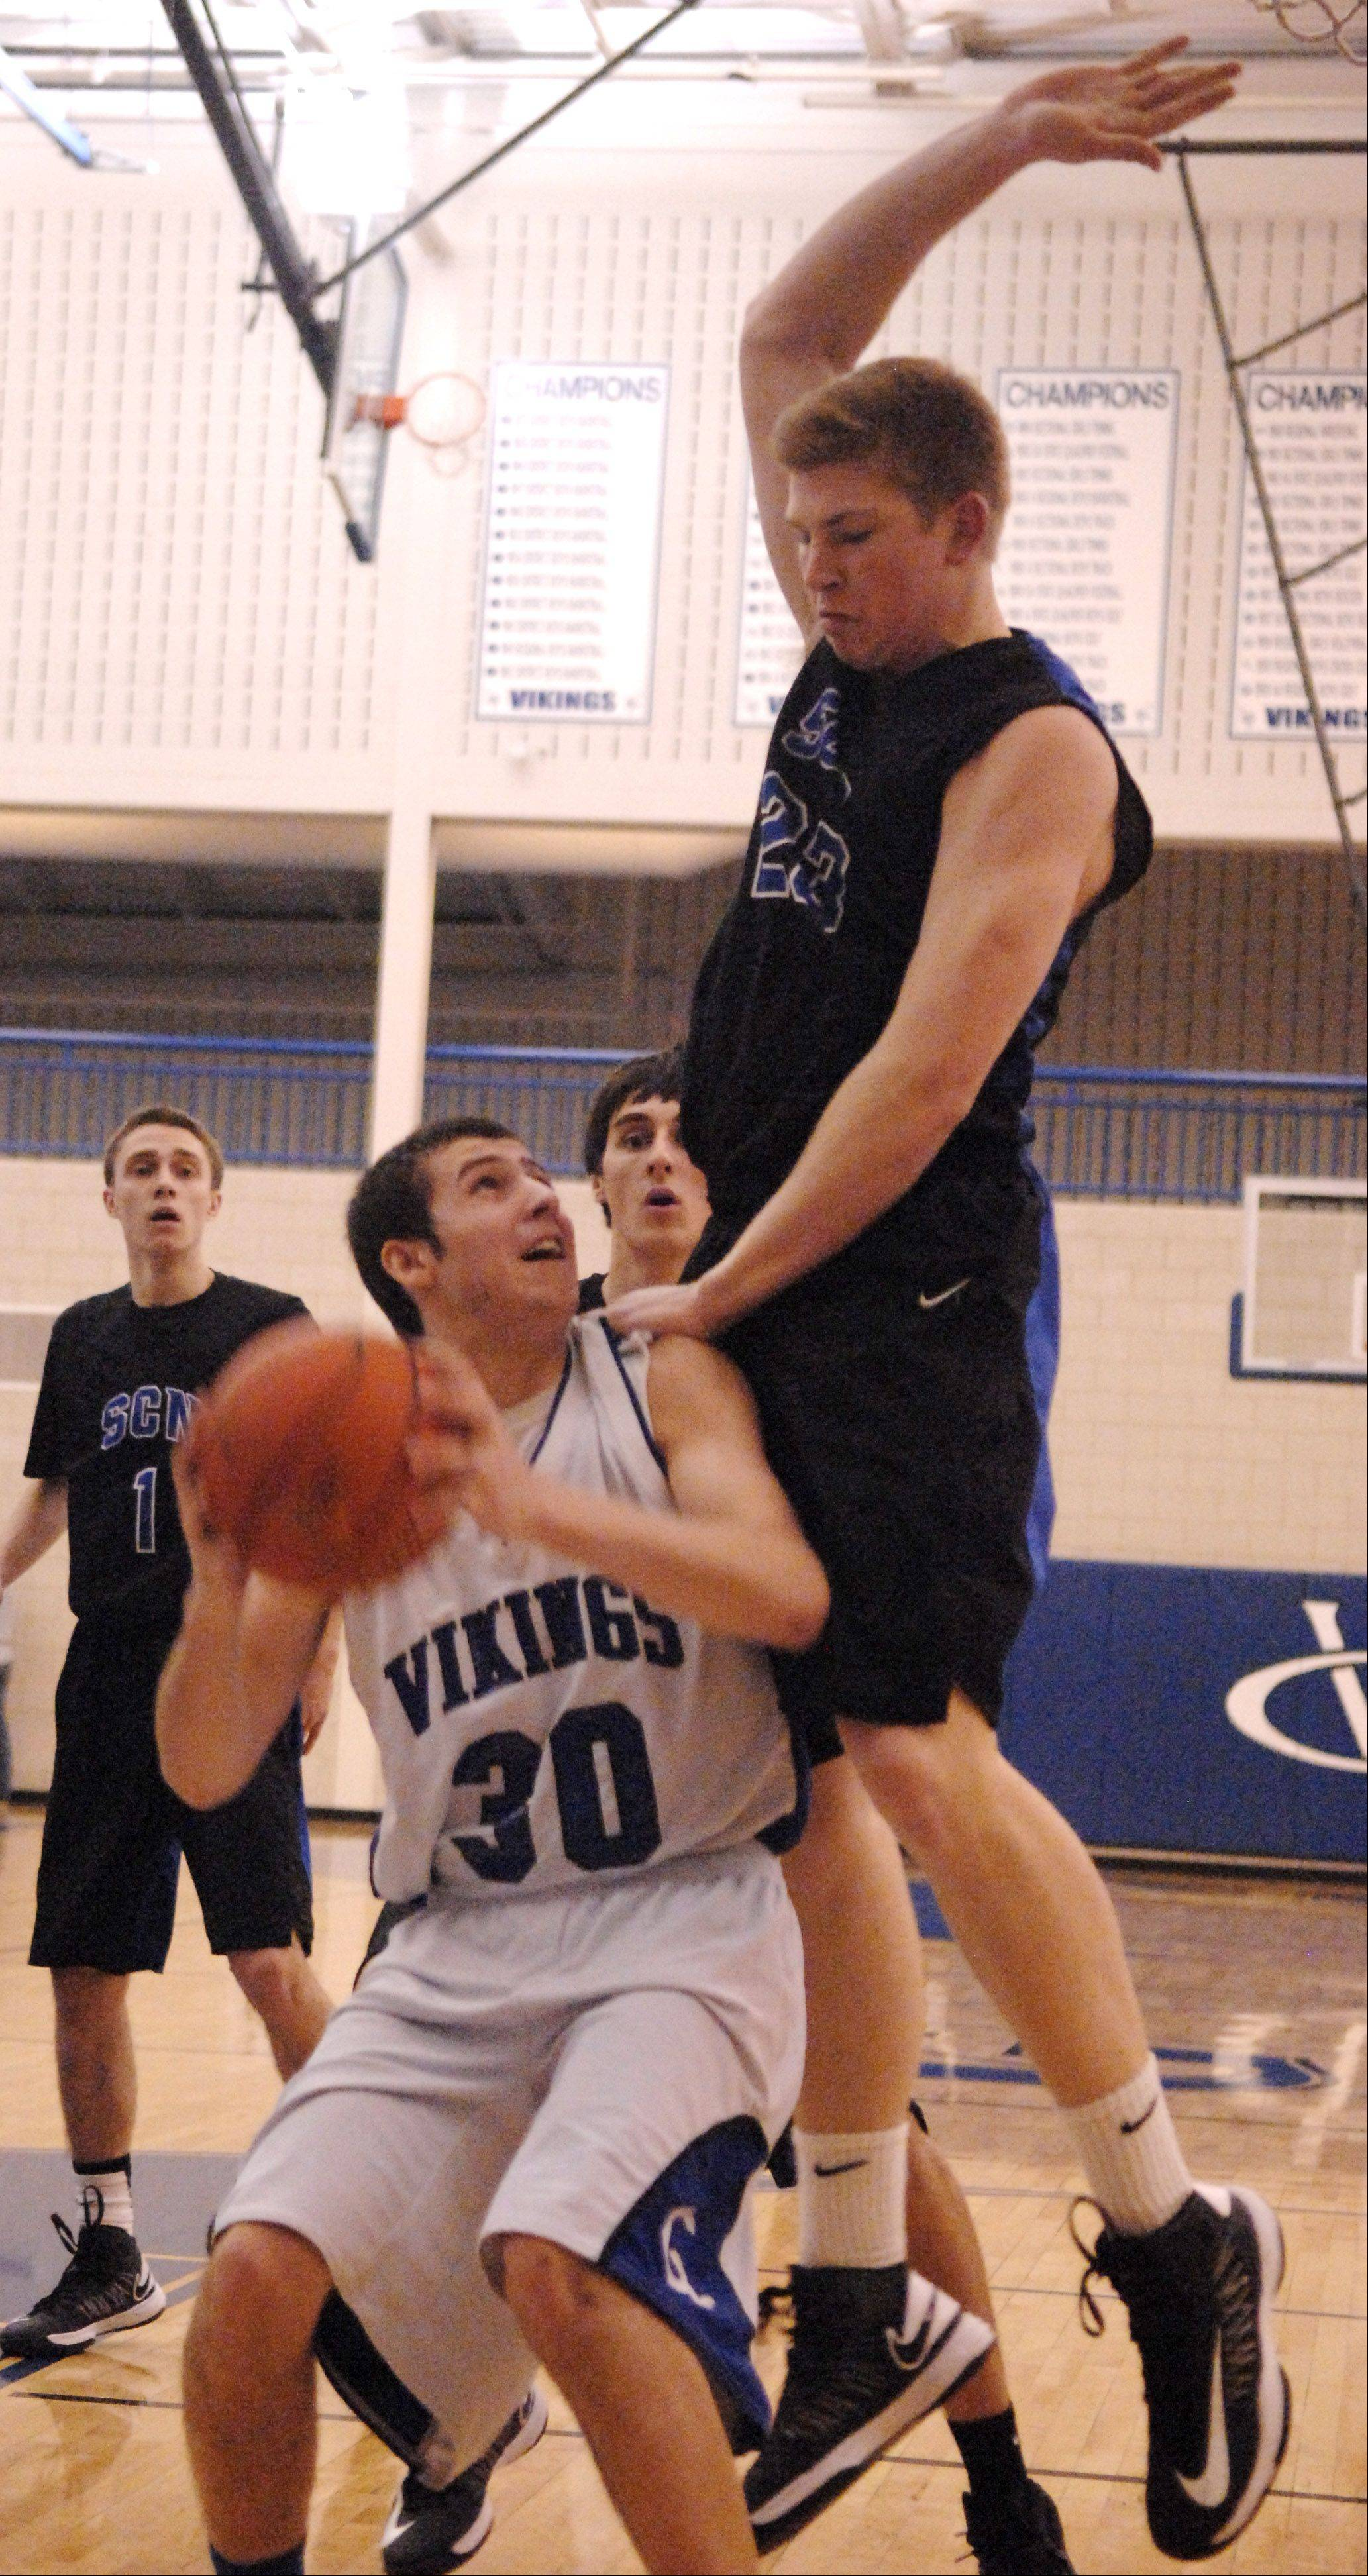 Geneva's Chris Parrilli draws a foul by St. Charles North's Justin Stanko with a pump fake during Friday's game in Geneva.